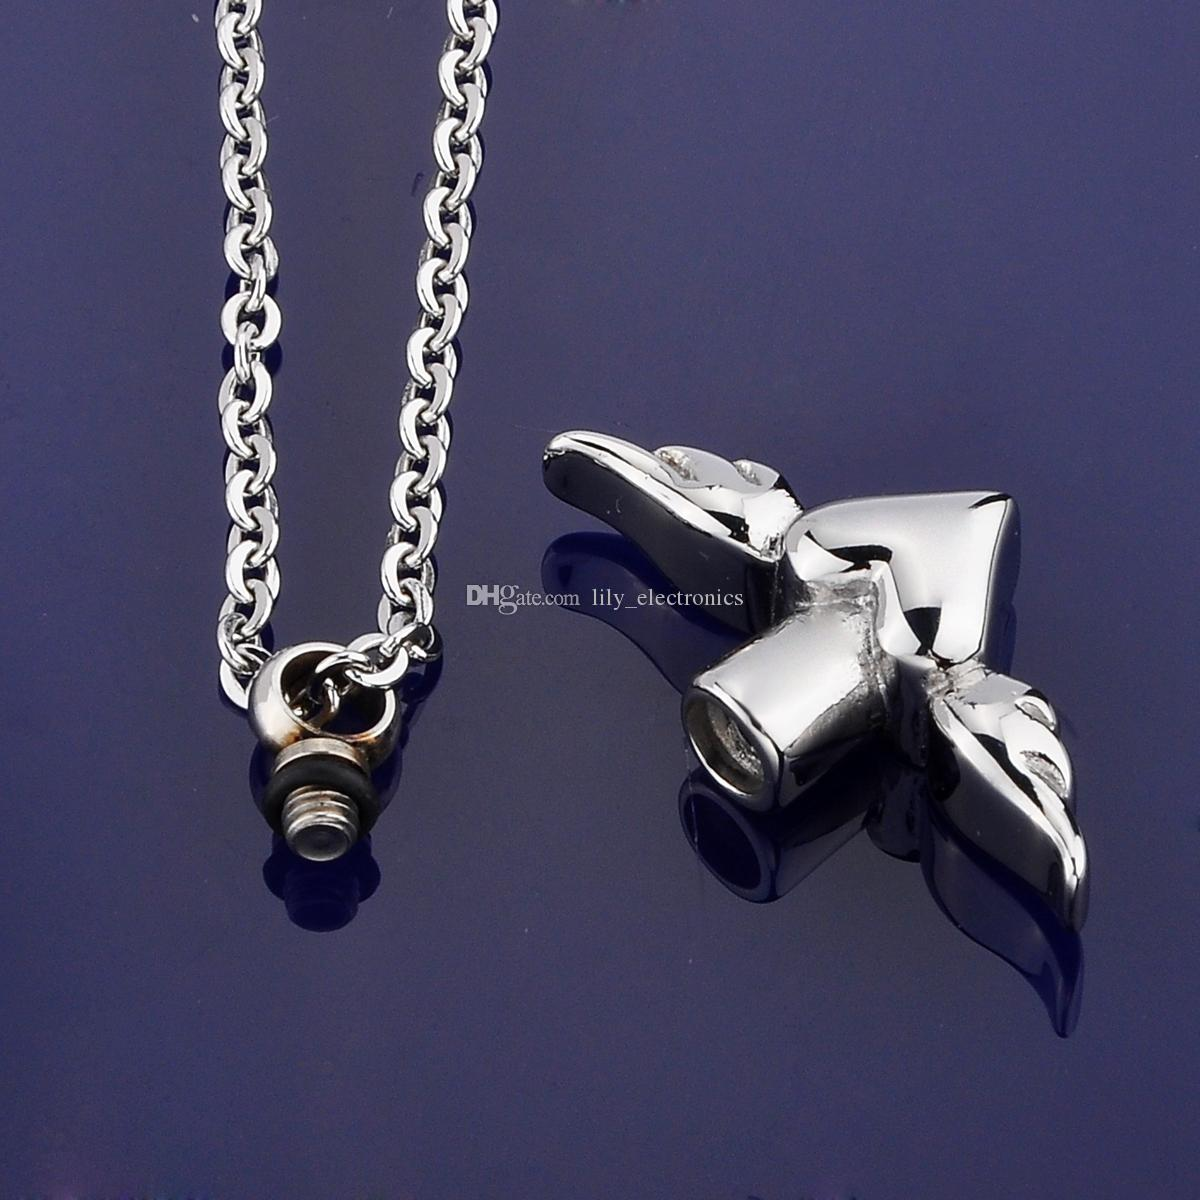 Lily Stainless Steel Angel Wing Charm waterproof urn pendant Necklace Memorial Ash Keepsake Cremation Jewelry with gift bag and chain